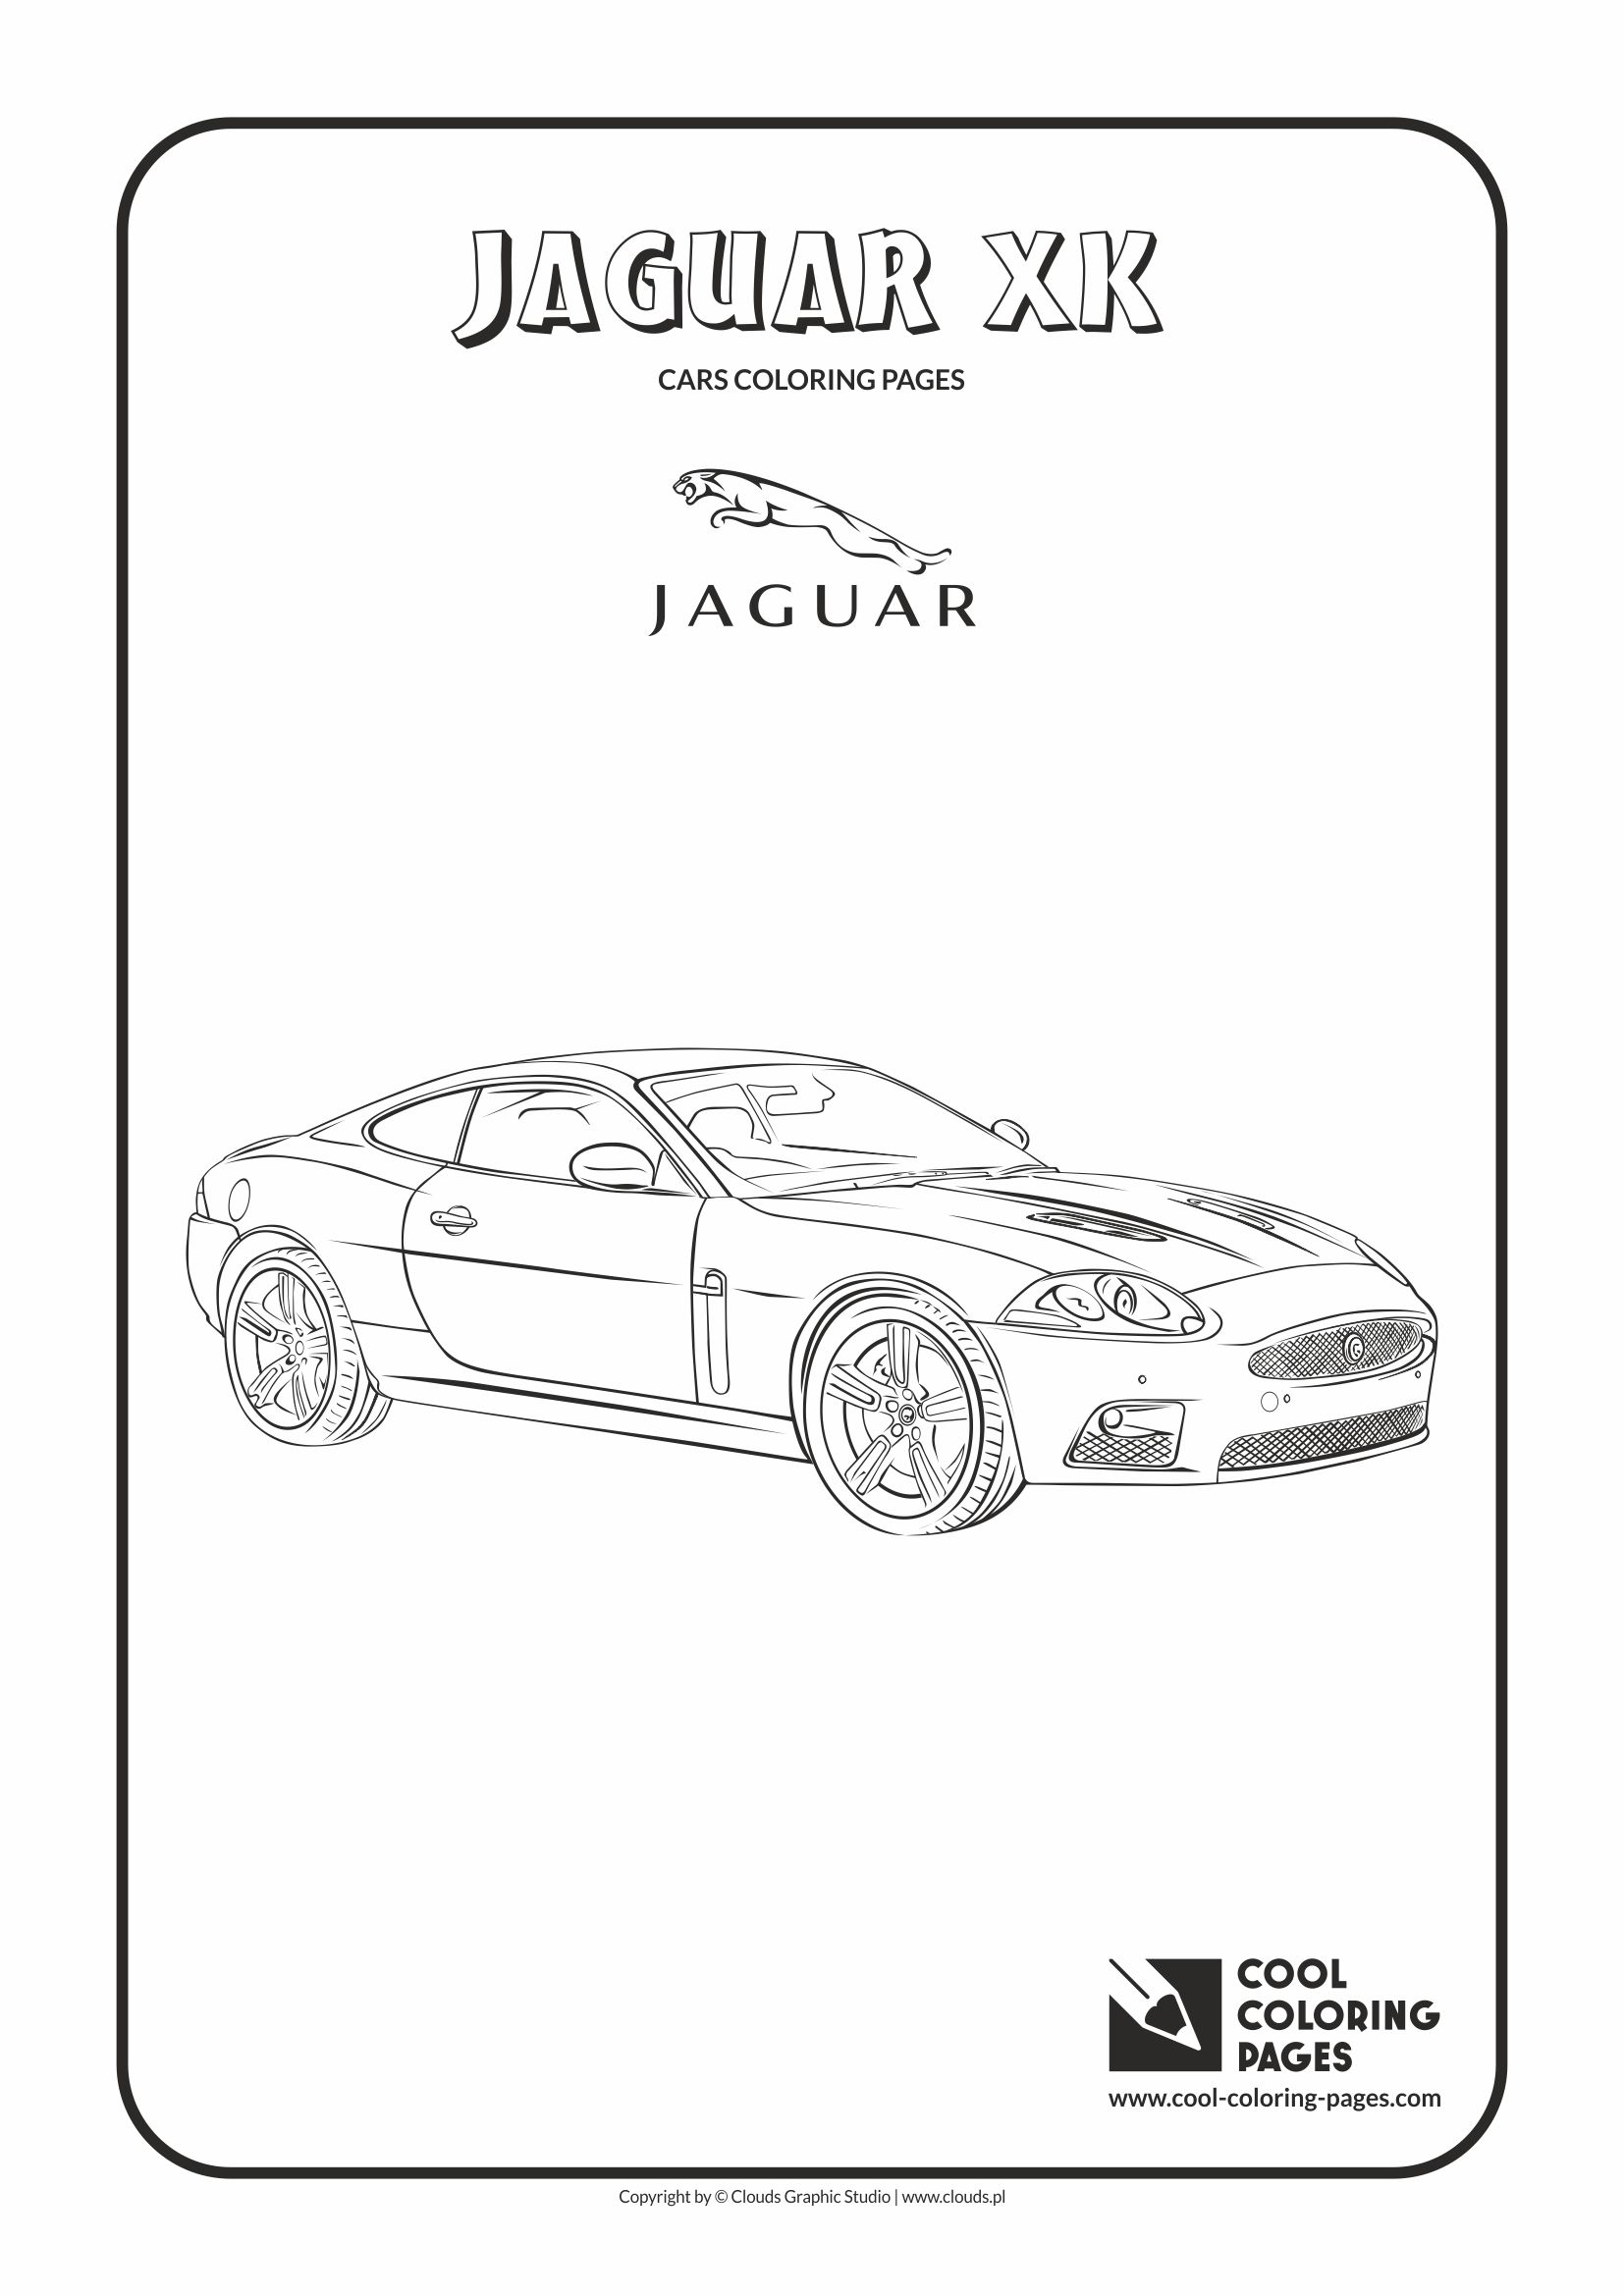 Cool Coloring Pages - Vehicles / Jaguar XK / Coloring page with Jaguar XK